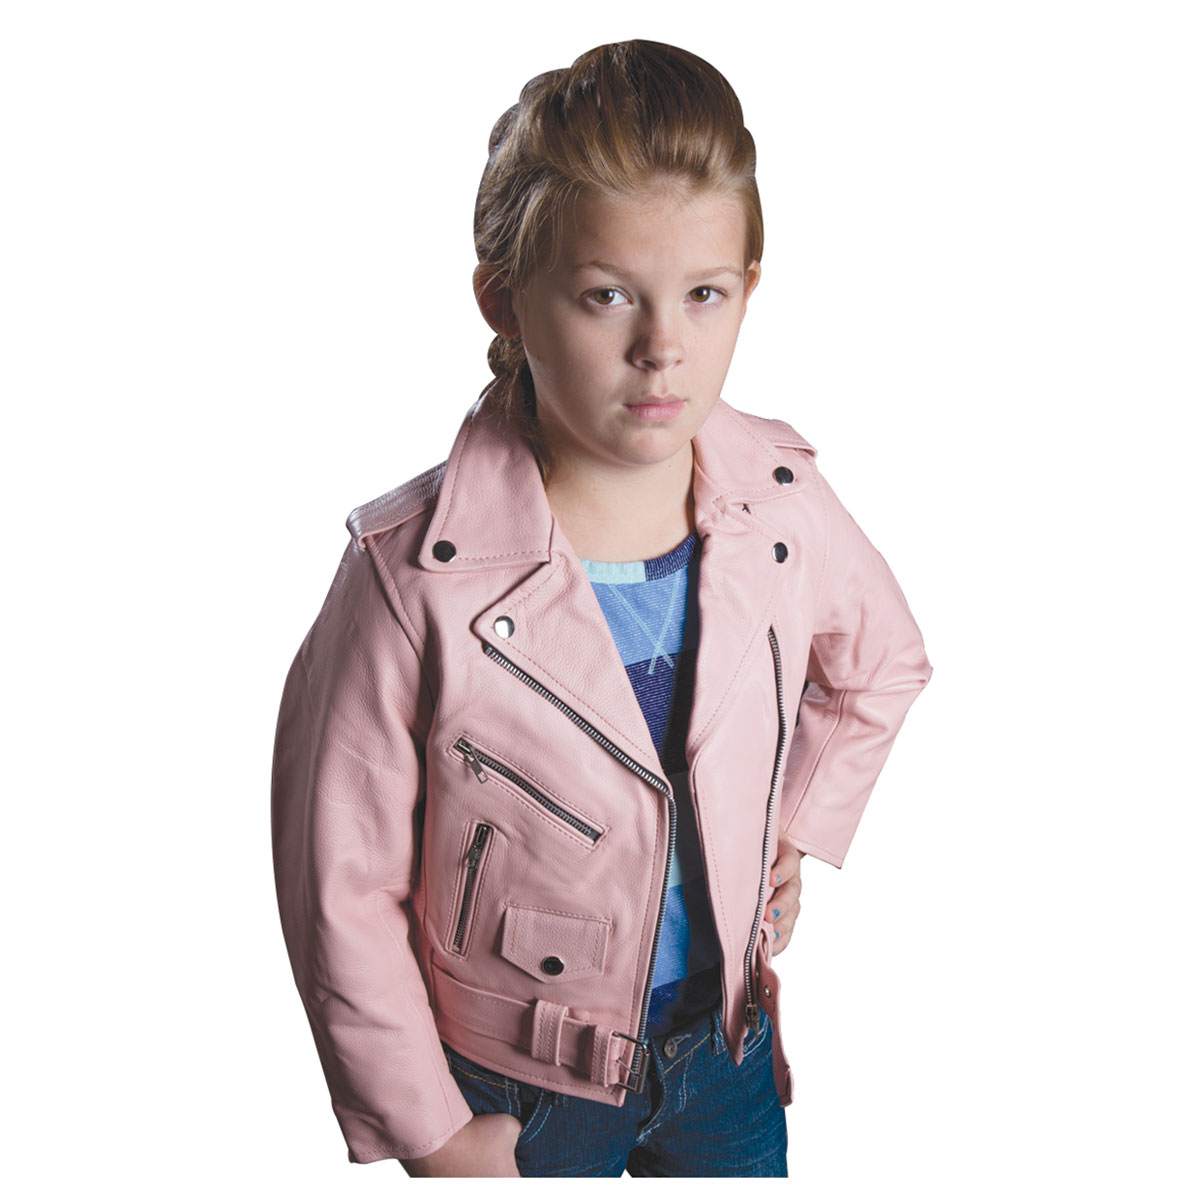 ede8d7b5c Allstate Leather Inc. Girl's Pink Cowhide Leather Motorcycle Jacket -  AL2803-LG